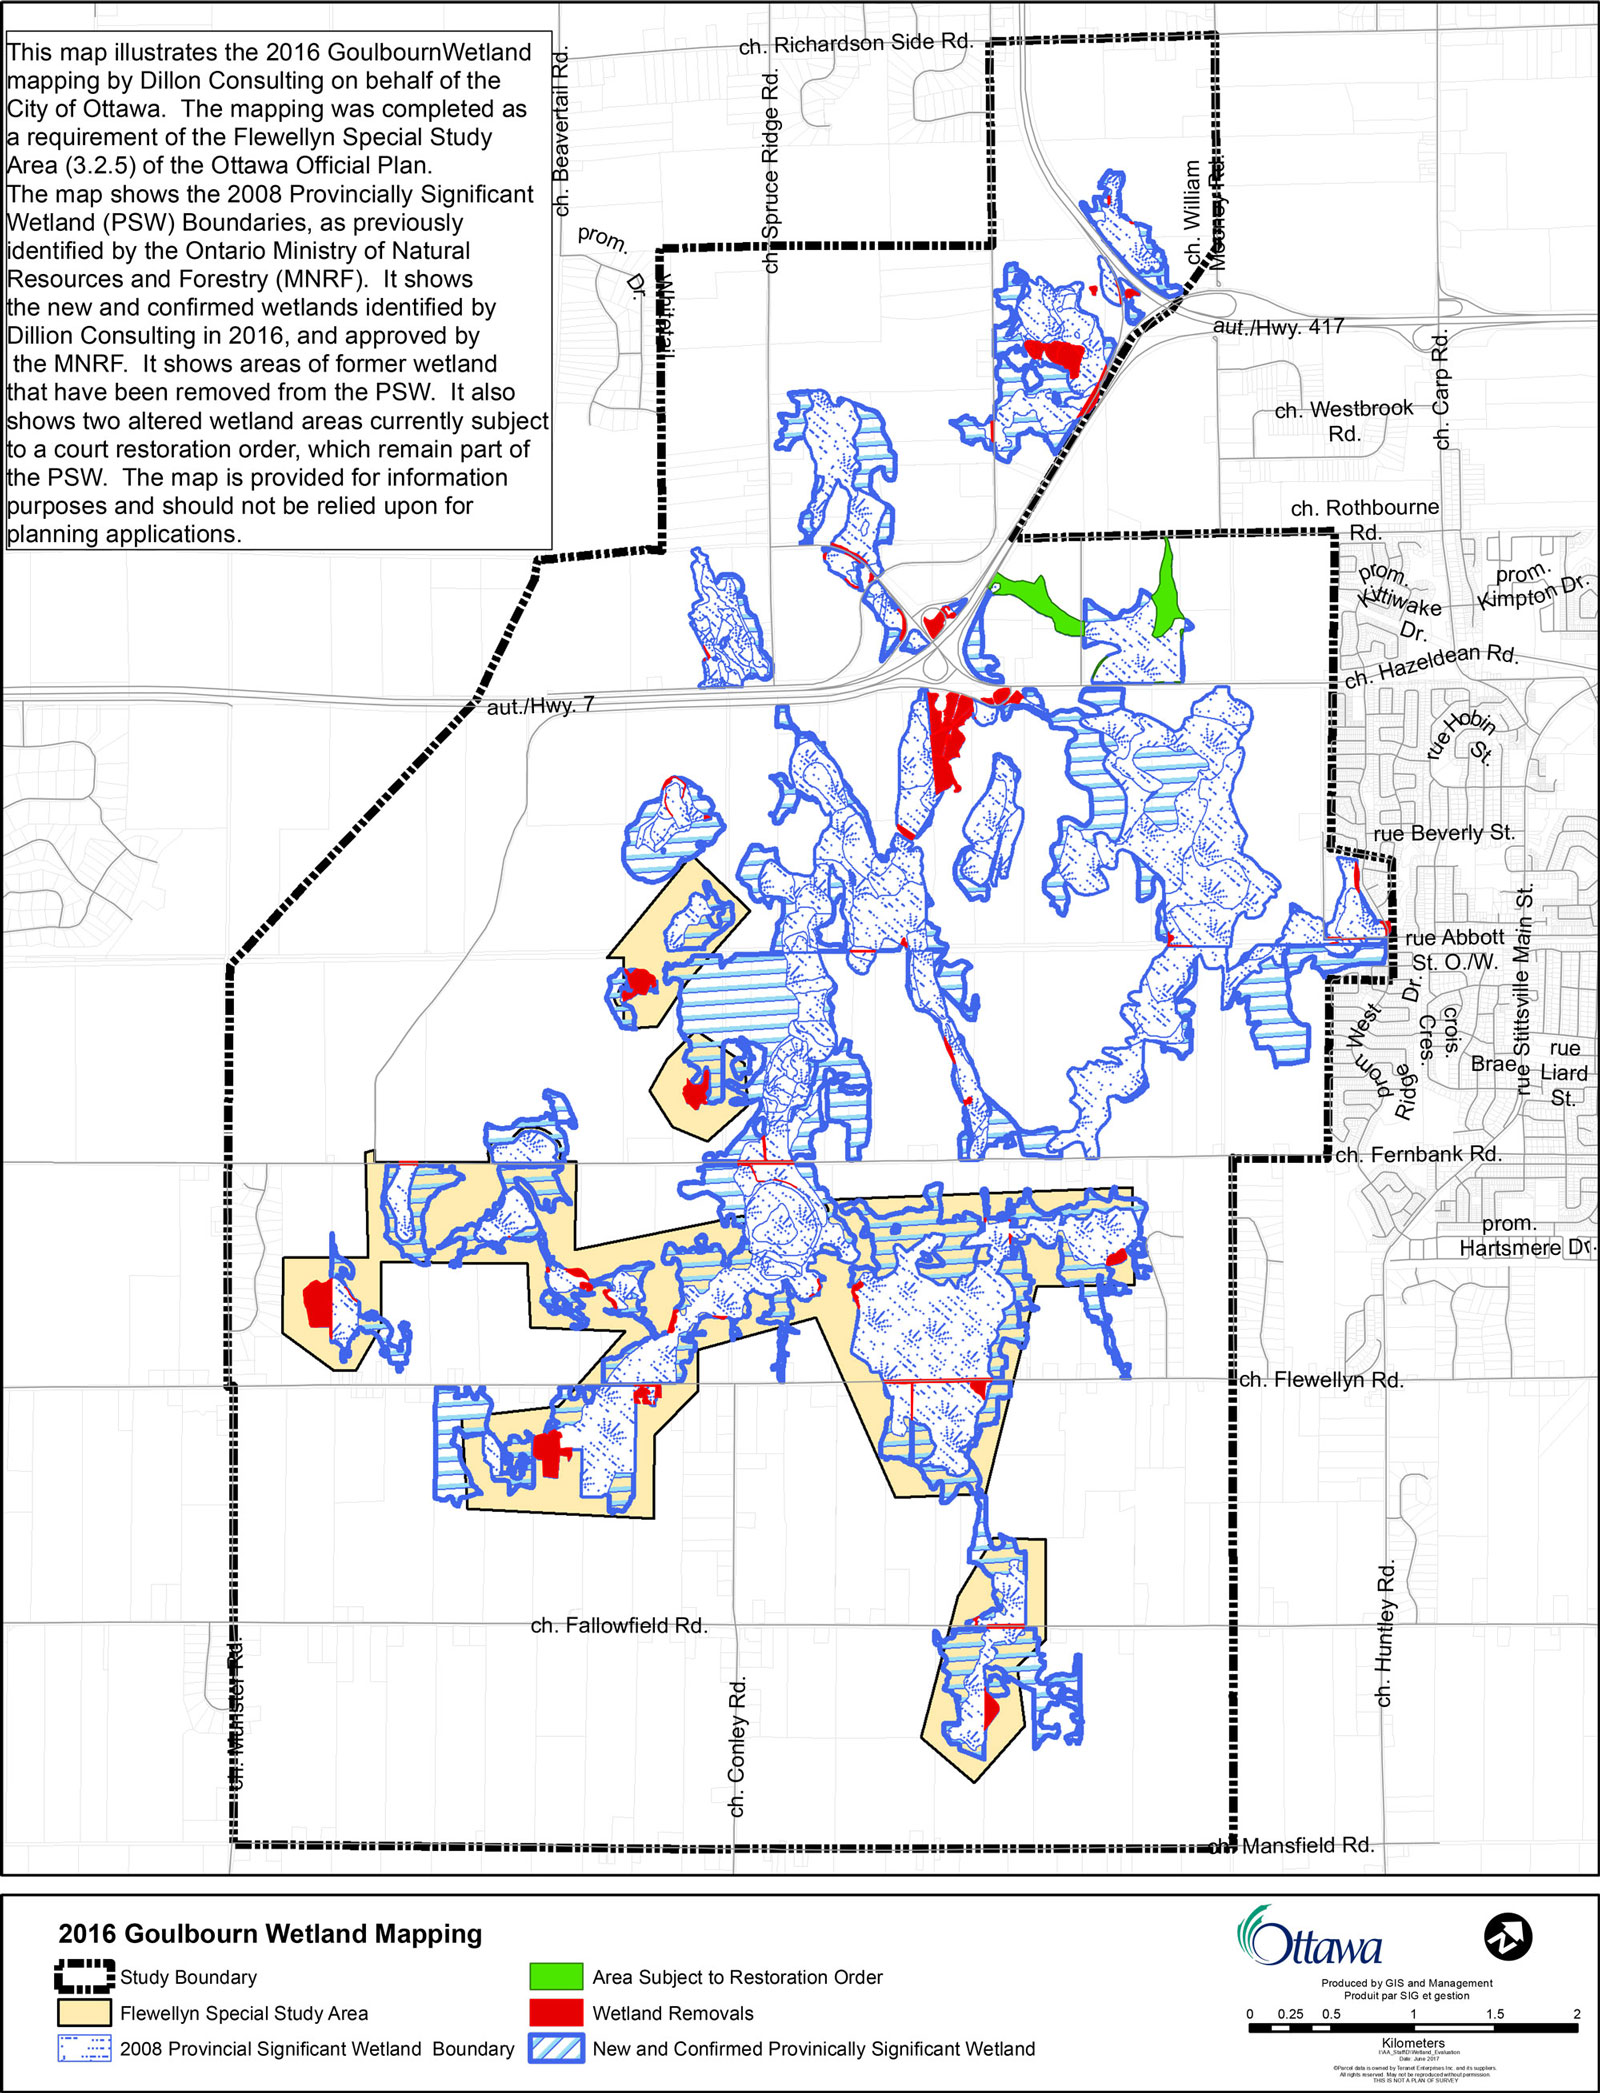 This map illustrates the 2016 Goulbourn Wetland mapping by Dillon Consulting on behalf of the City of Ottawa. The mapping was completed as a requirement of the Flewellyn Special Study Area (3.2.5) of the Ottawa Official Plan. The map shows the 2008 Provincially Significant Wetland (PSW) Boundaries, as previously identified by the Ontario Ministry of Natural Resources and Forestry (MNRF). It shows the new and confirmed wetlands identified by Dillion Consulting in 2016, and approved by the MNRF. It shows areas of former wetland that have been removed from the PSW. It also shows two altered wetland areas currently subject to a court restoration order, which remain part o the PSW. The map is provided for information purposes and should not be relied upon for planning applications. The full size map is available here: http://ottawa.ca/en/city-hall/public-consultations/environment/flewellyn-special-study-area-and-goulbourn-wetland